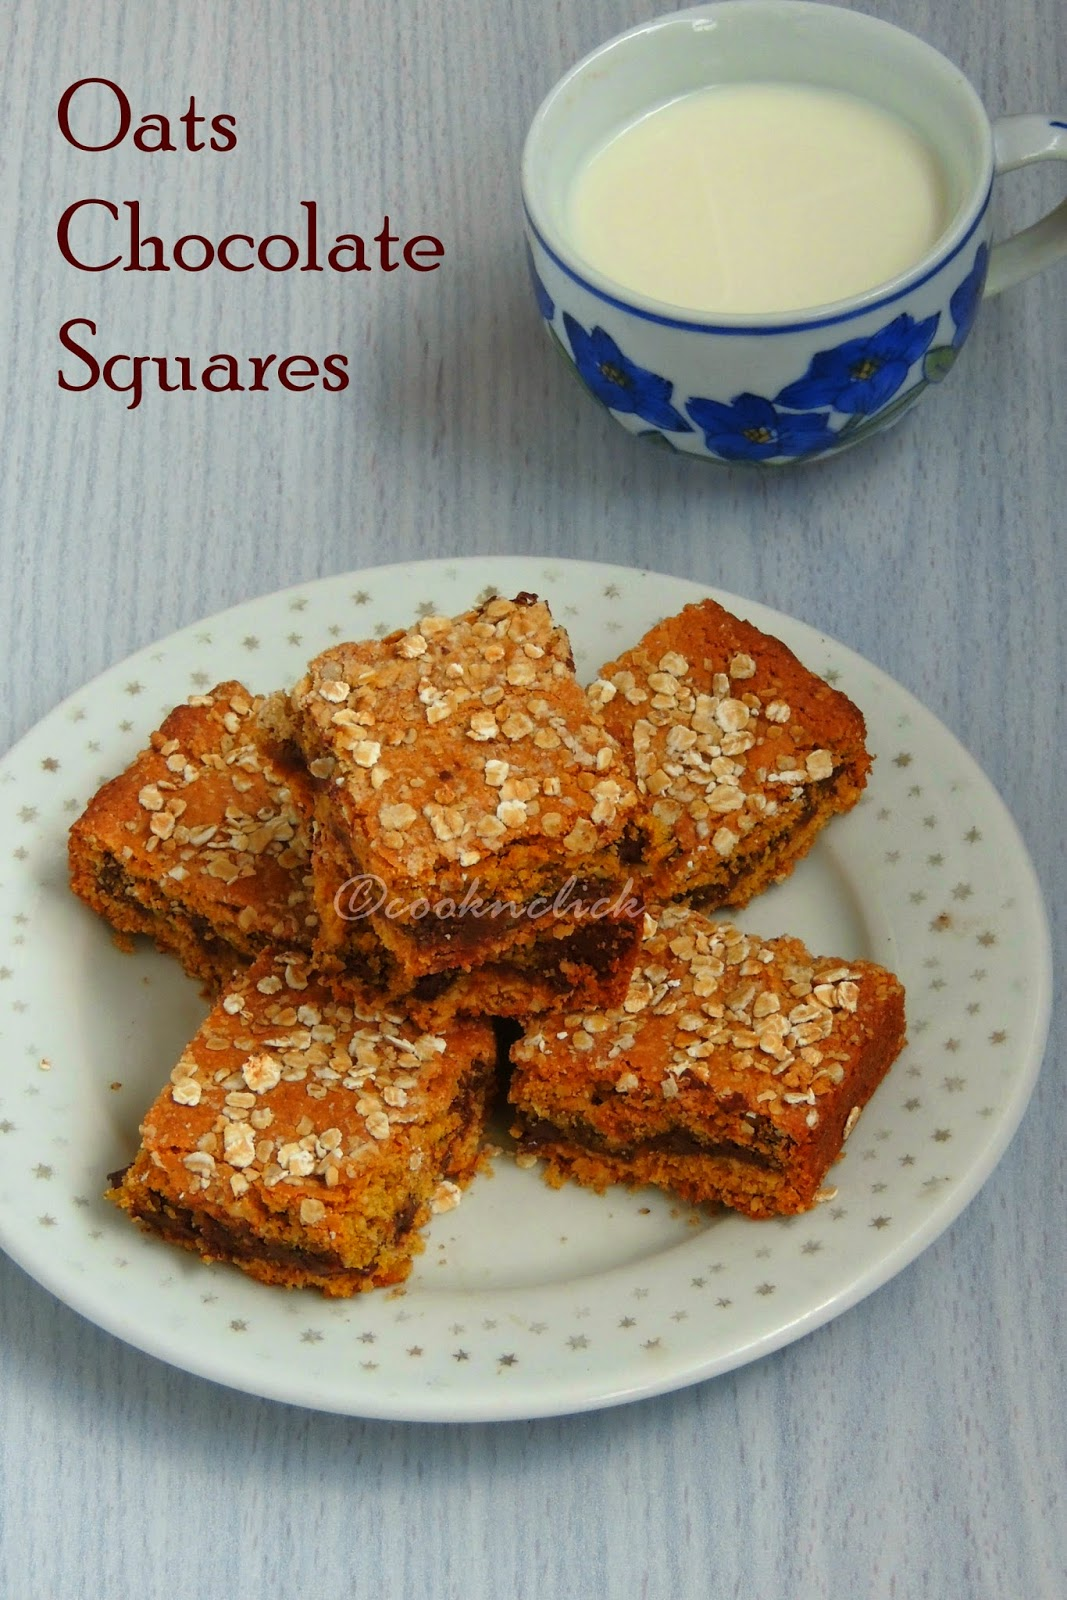 Oats chocolate squares, eggless chocolate squares, chocolate squares